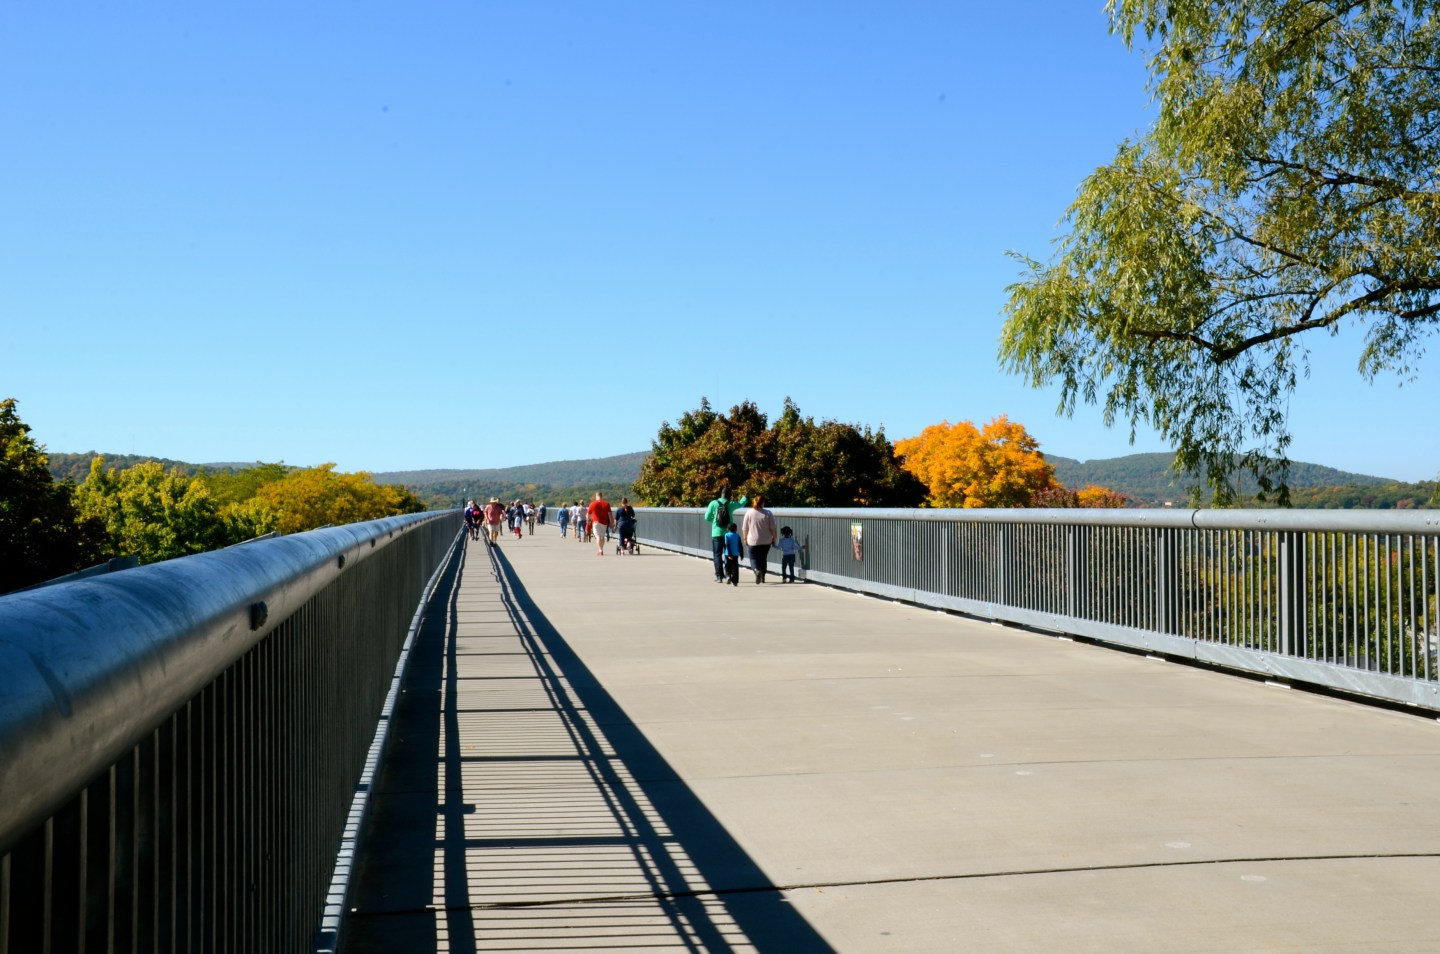 Taking a walk on Walkway over the Hudson.